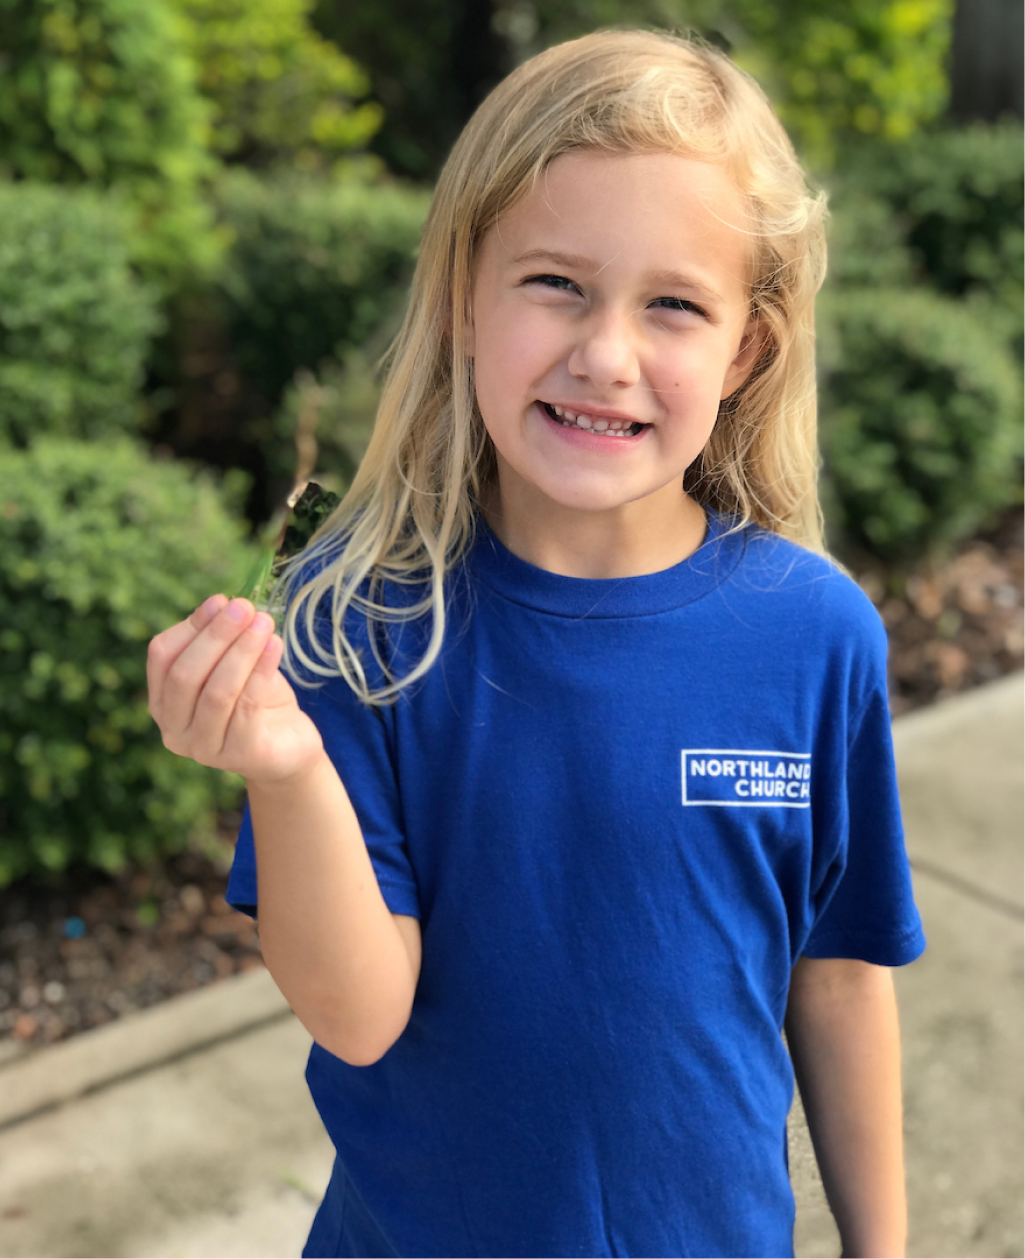 Young girl smiling in blue serve shirt